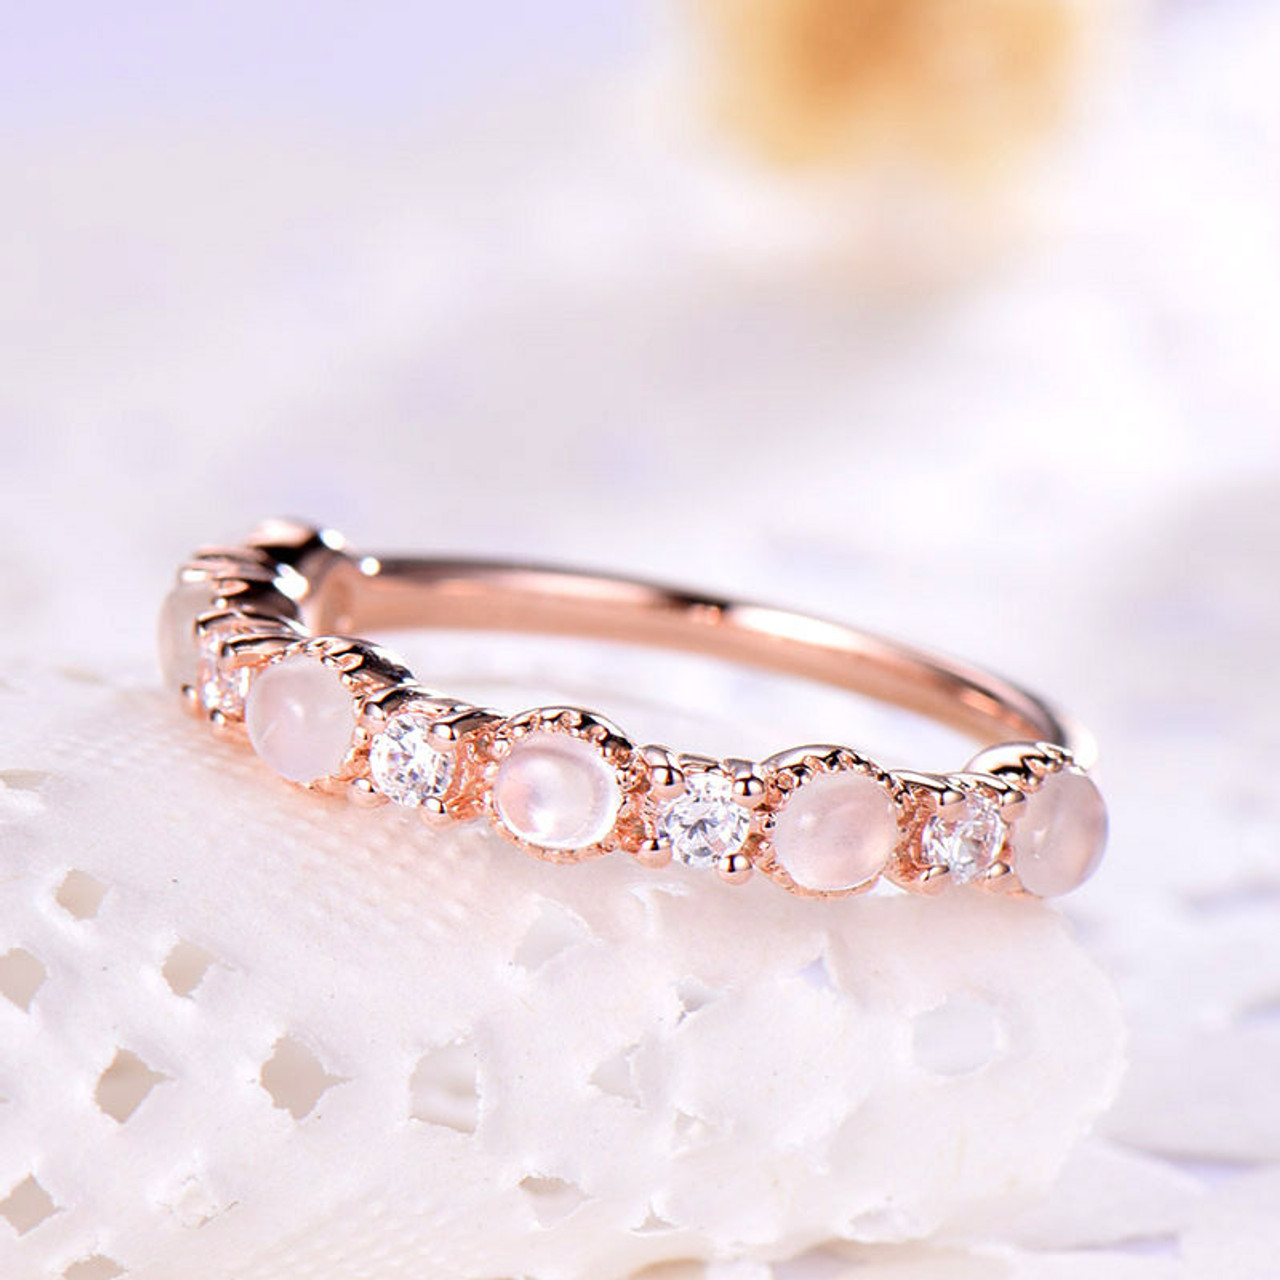 set carat on halo diamond products best shop rings wanelo bridal inspired vintage made wedding simulants man